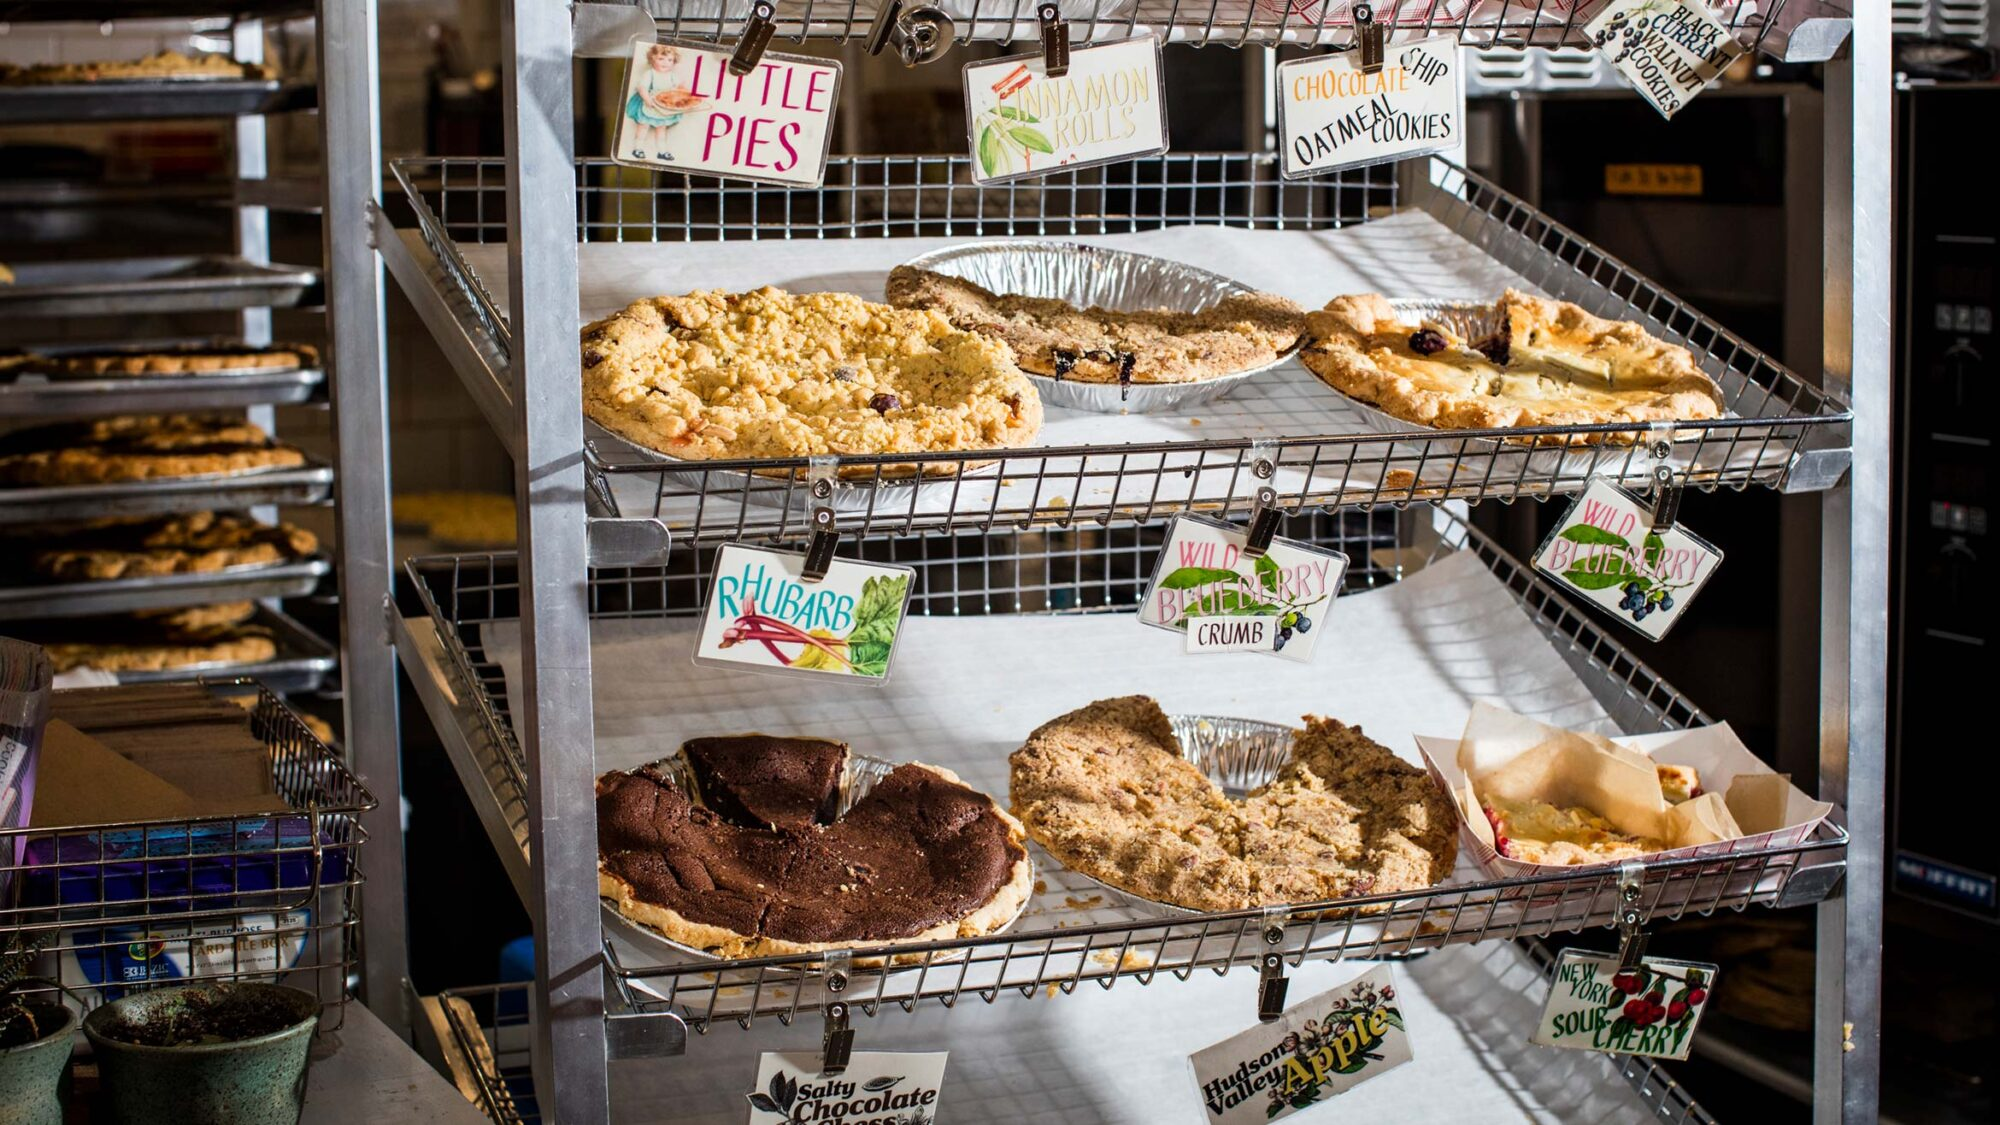 Article-Pie-for-Everyone-Petees-Pie-Company-NYC-Petra-Paredez